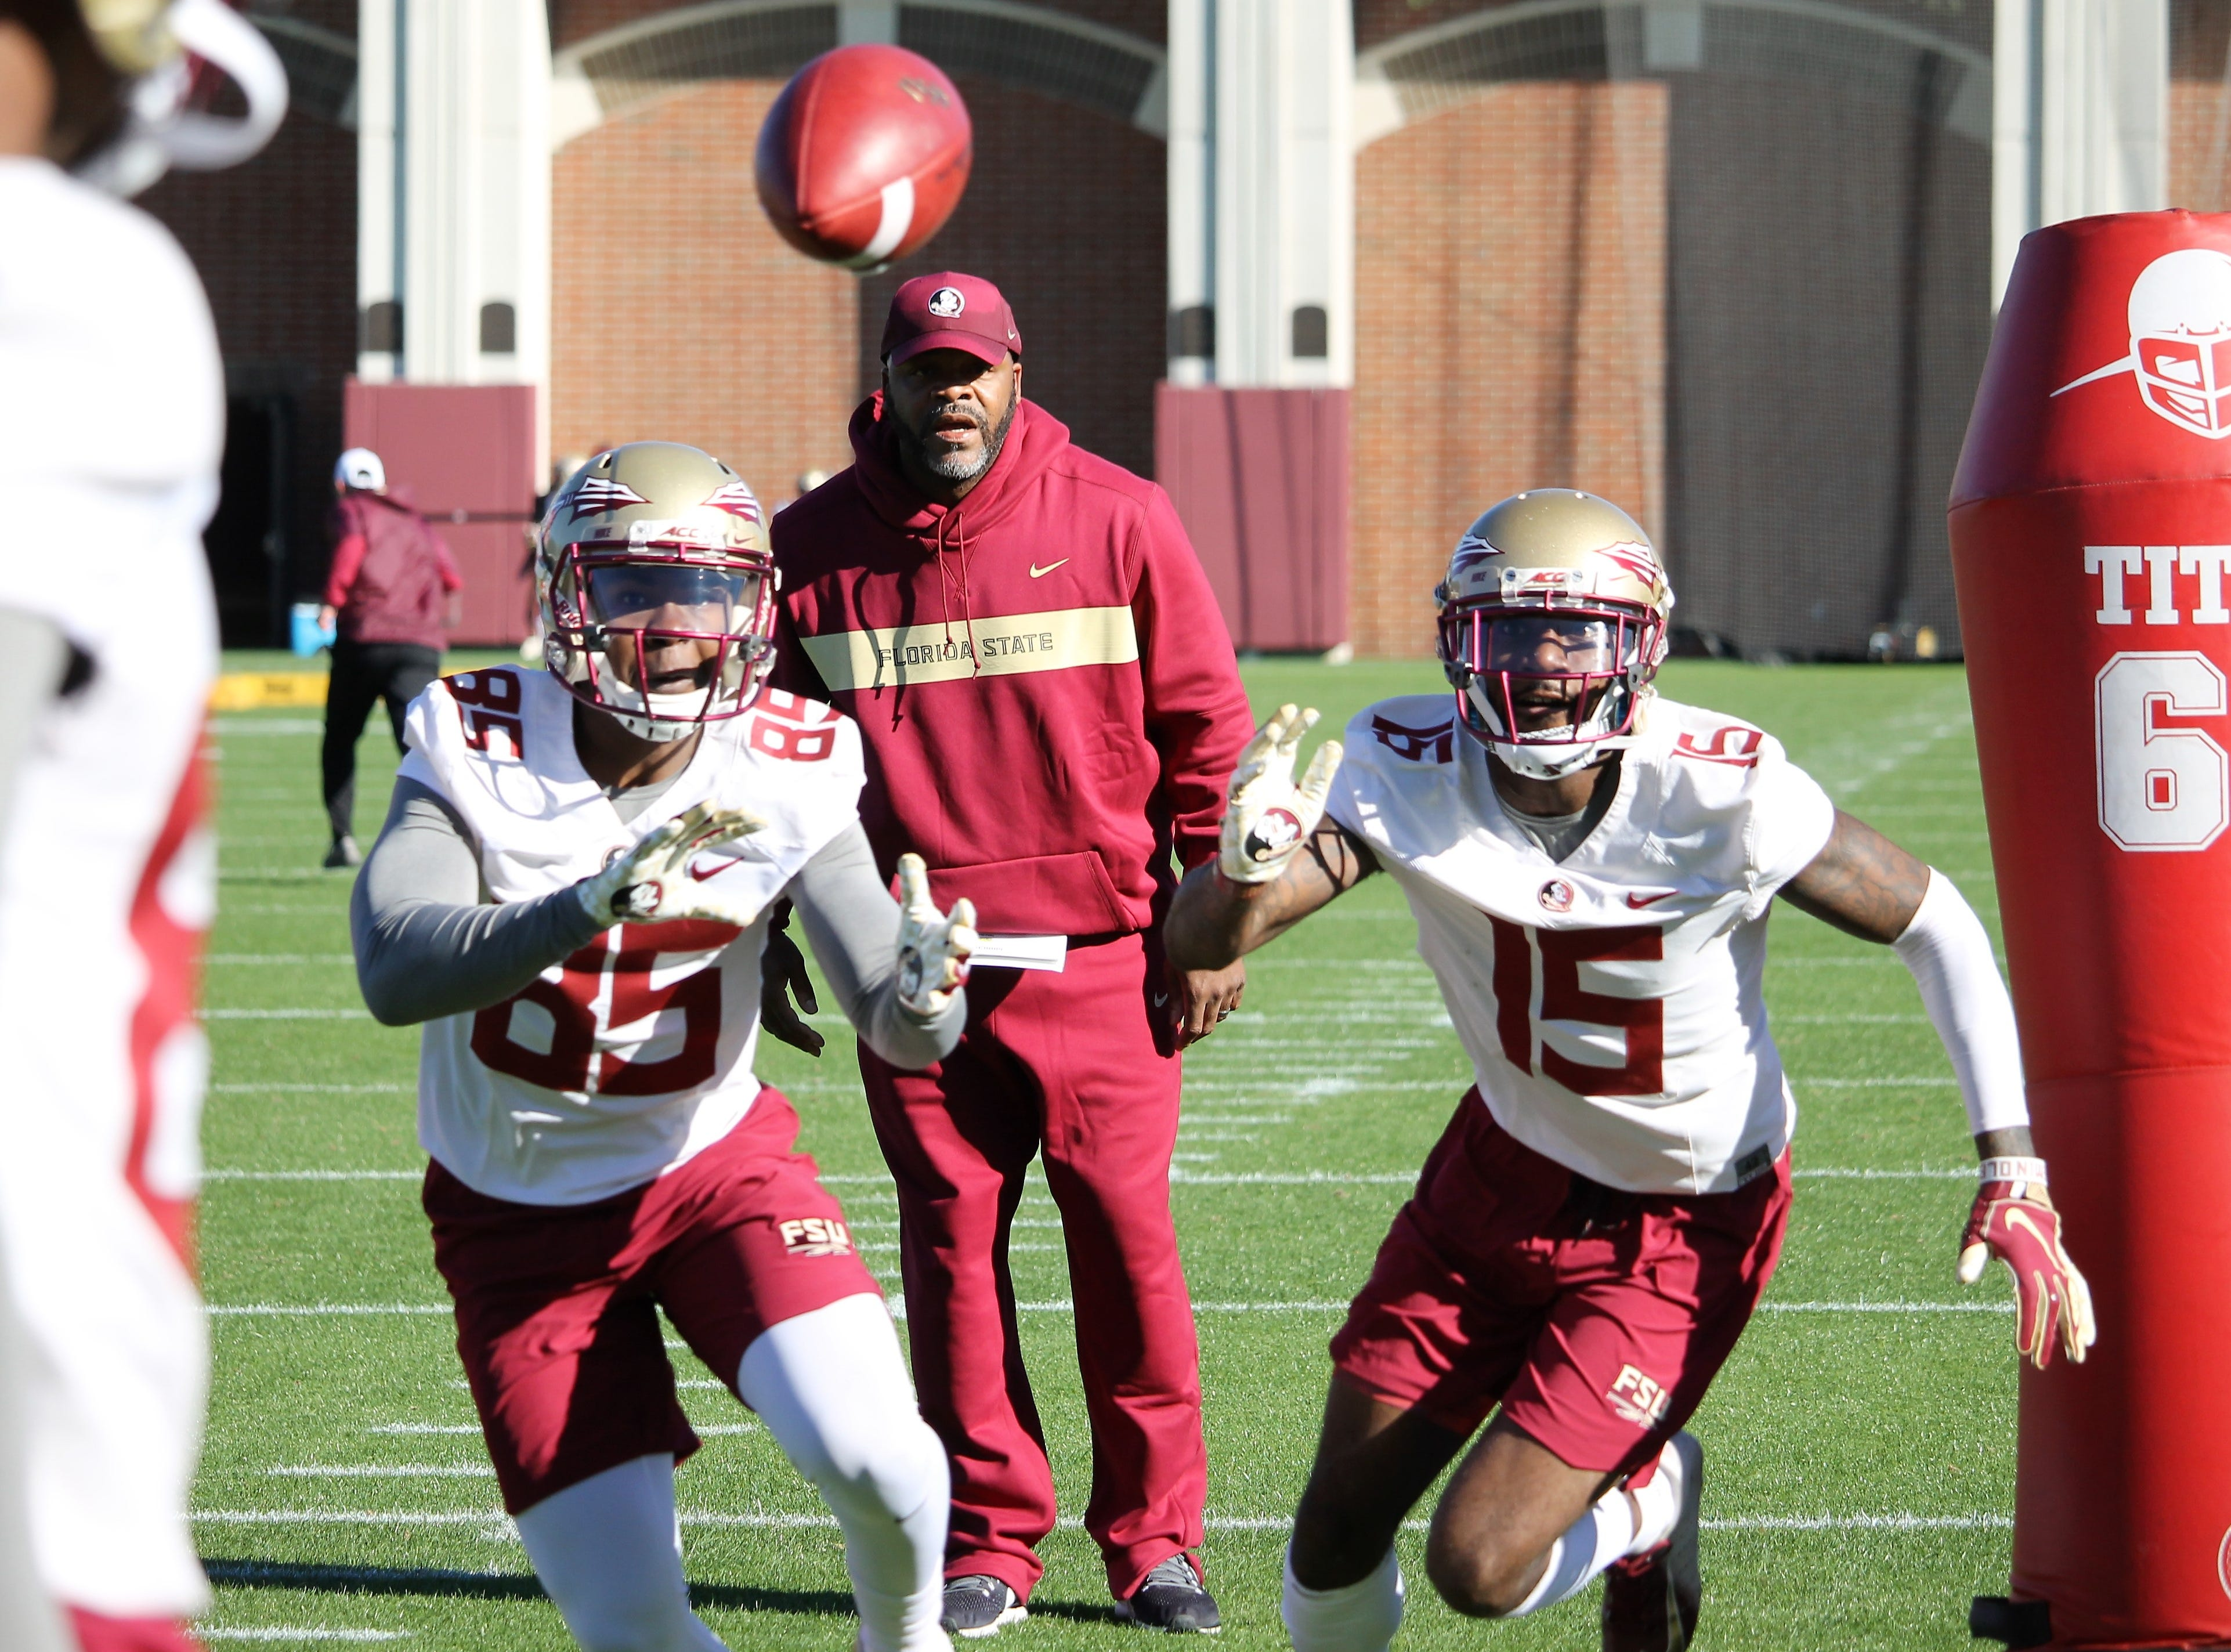 Wide receiver Tamorrion Terry (15) at FSU football practice on March 6, 2019.